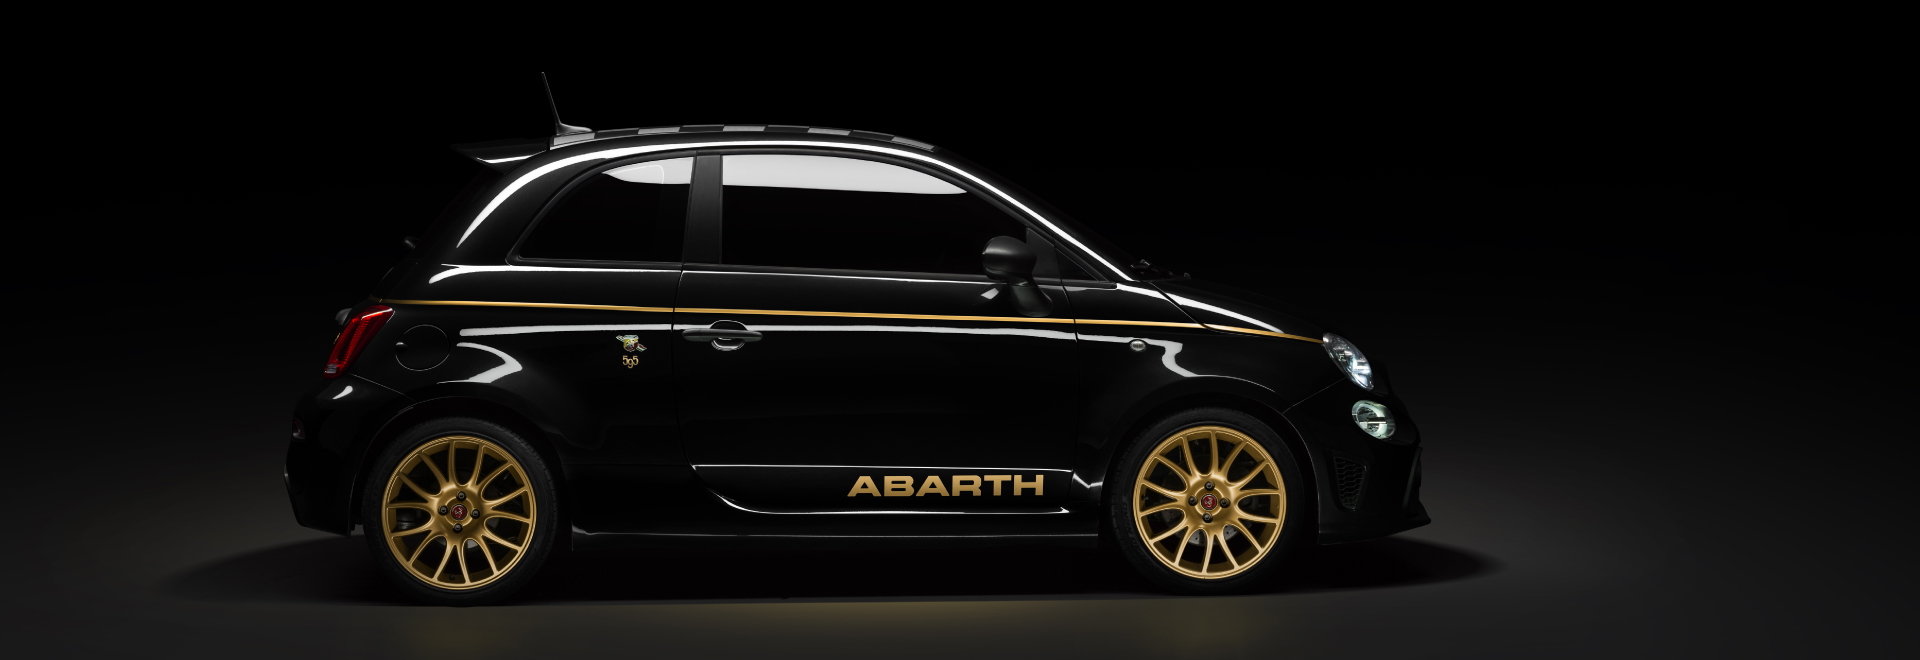 Abarth 595 Scorpioneoro View